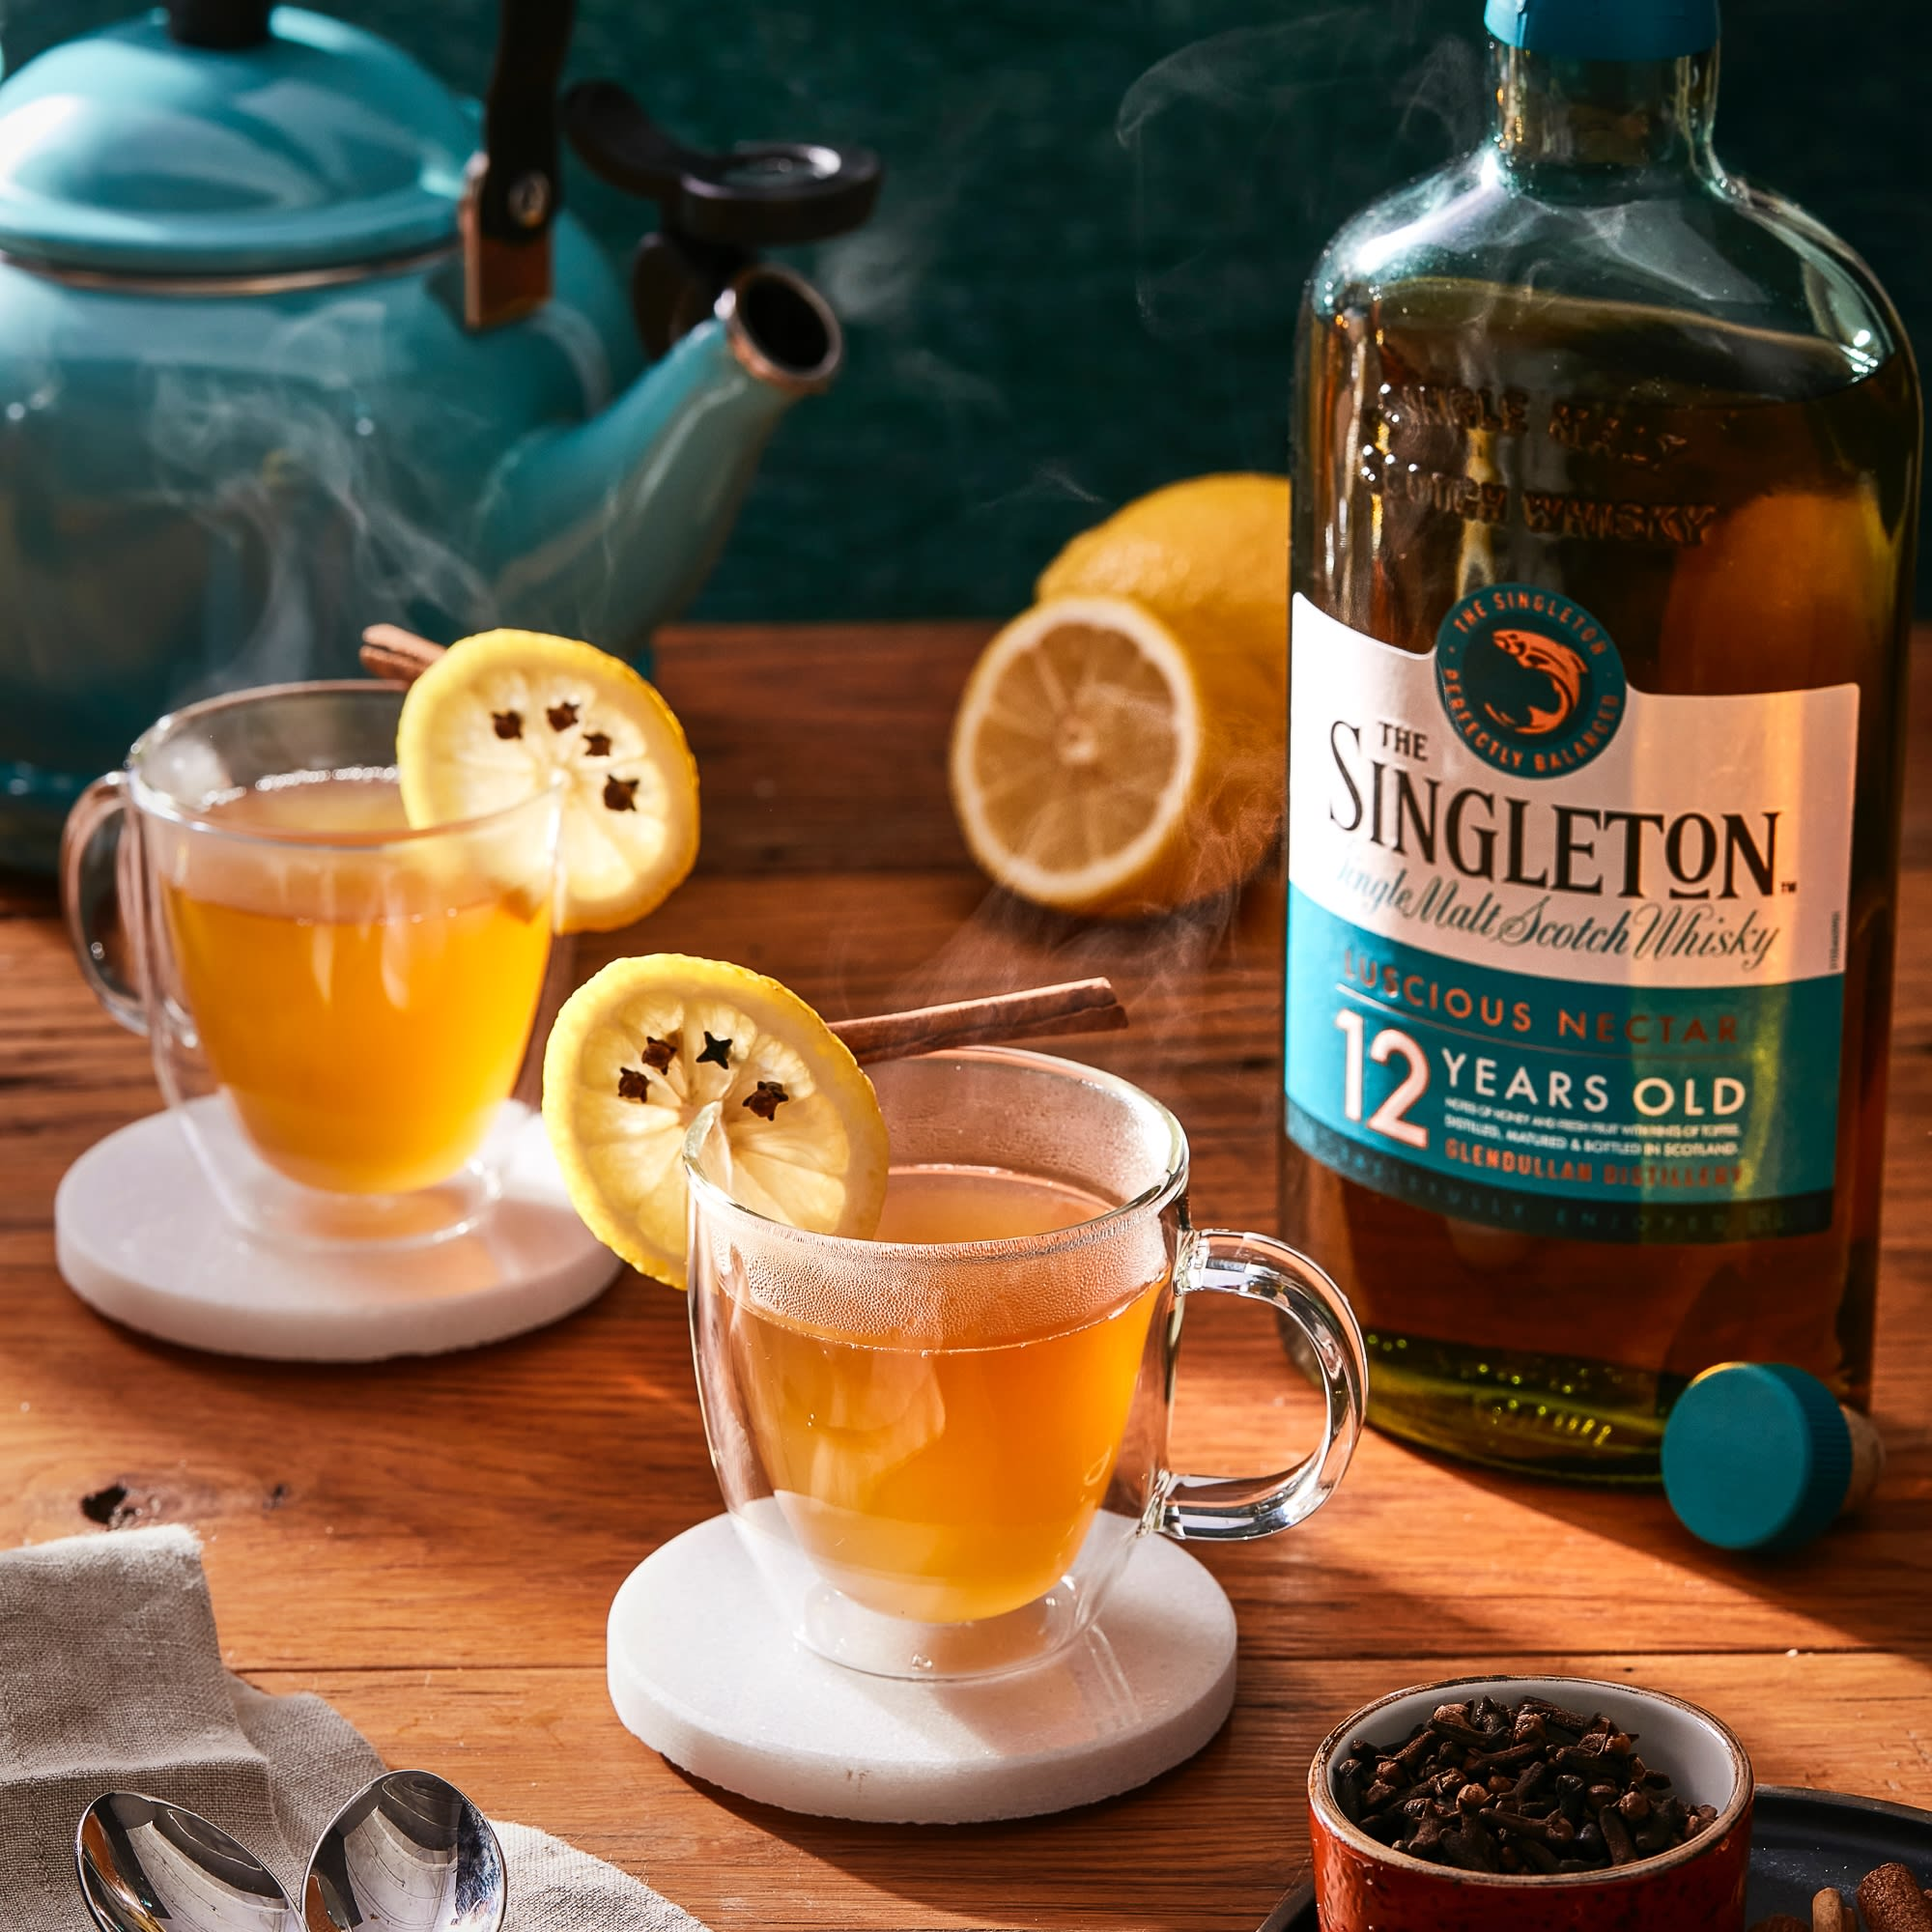 Tasty Hot Toddy Recipes Better Than Grandma's Old Fashion Cocktail photo